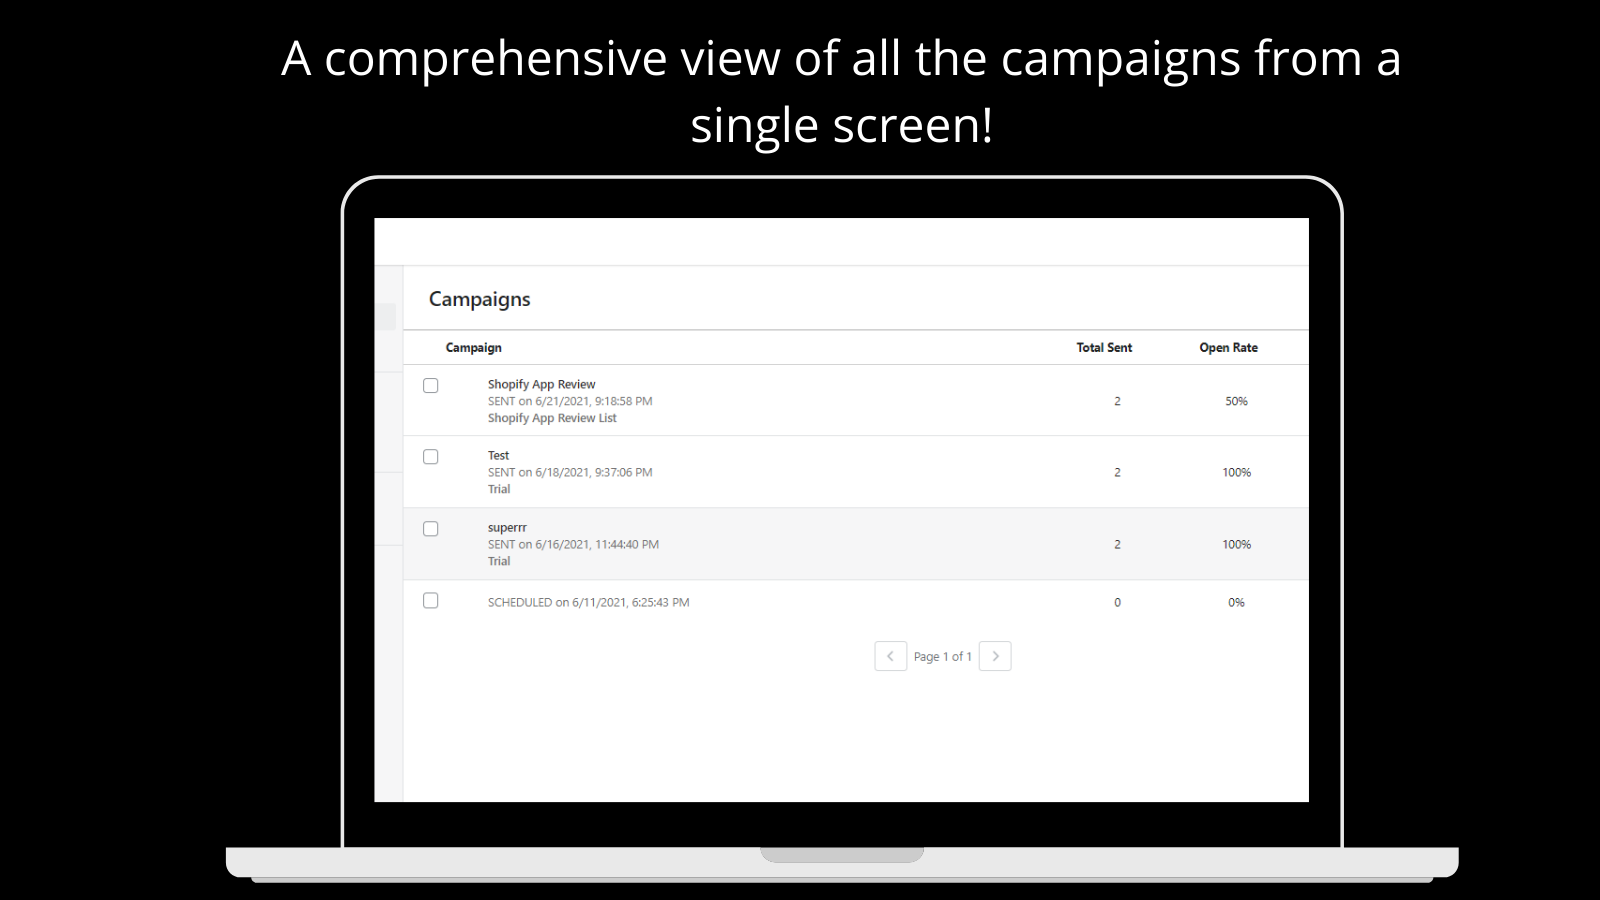 Holistic view of Campaigns